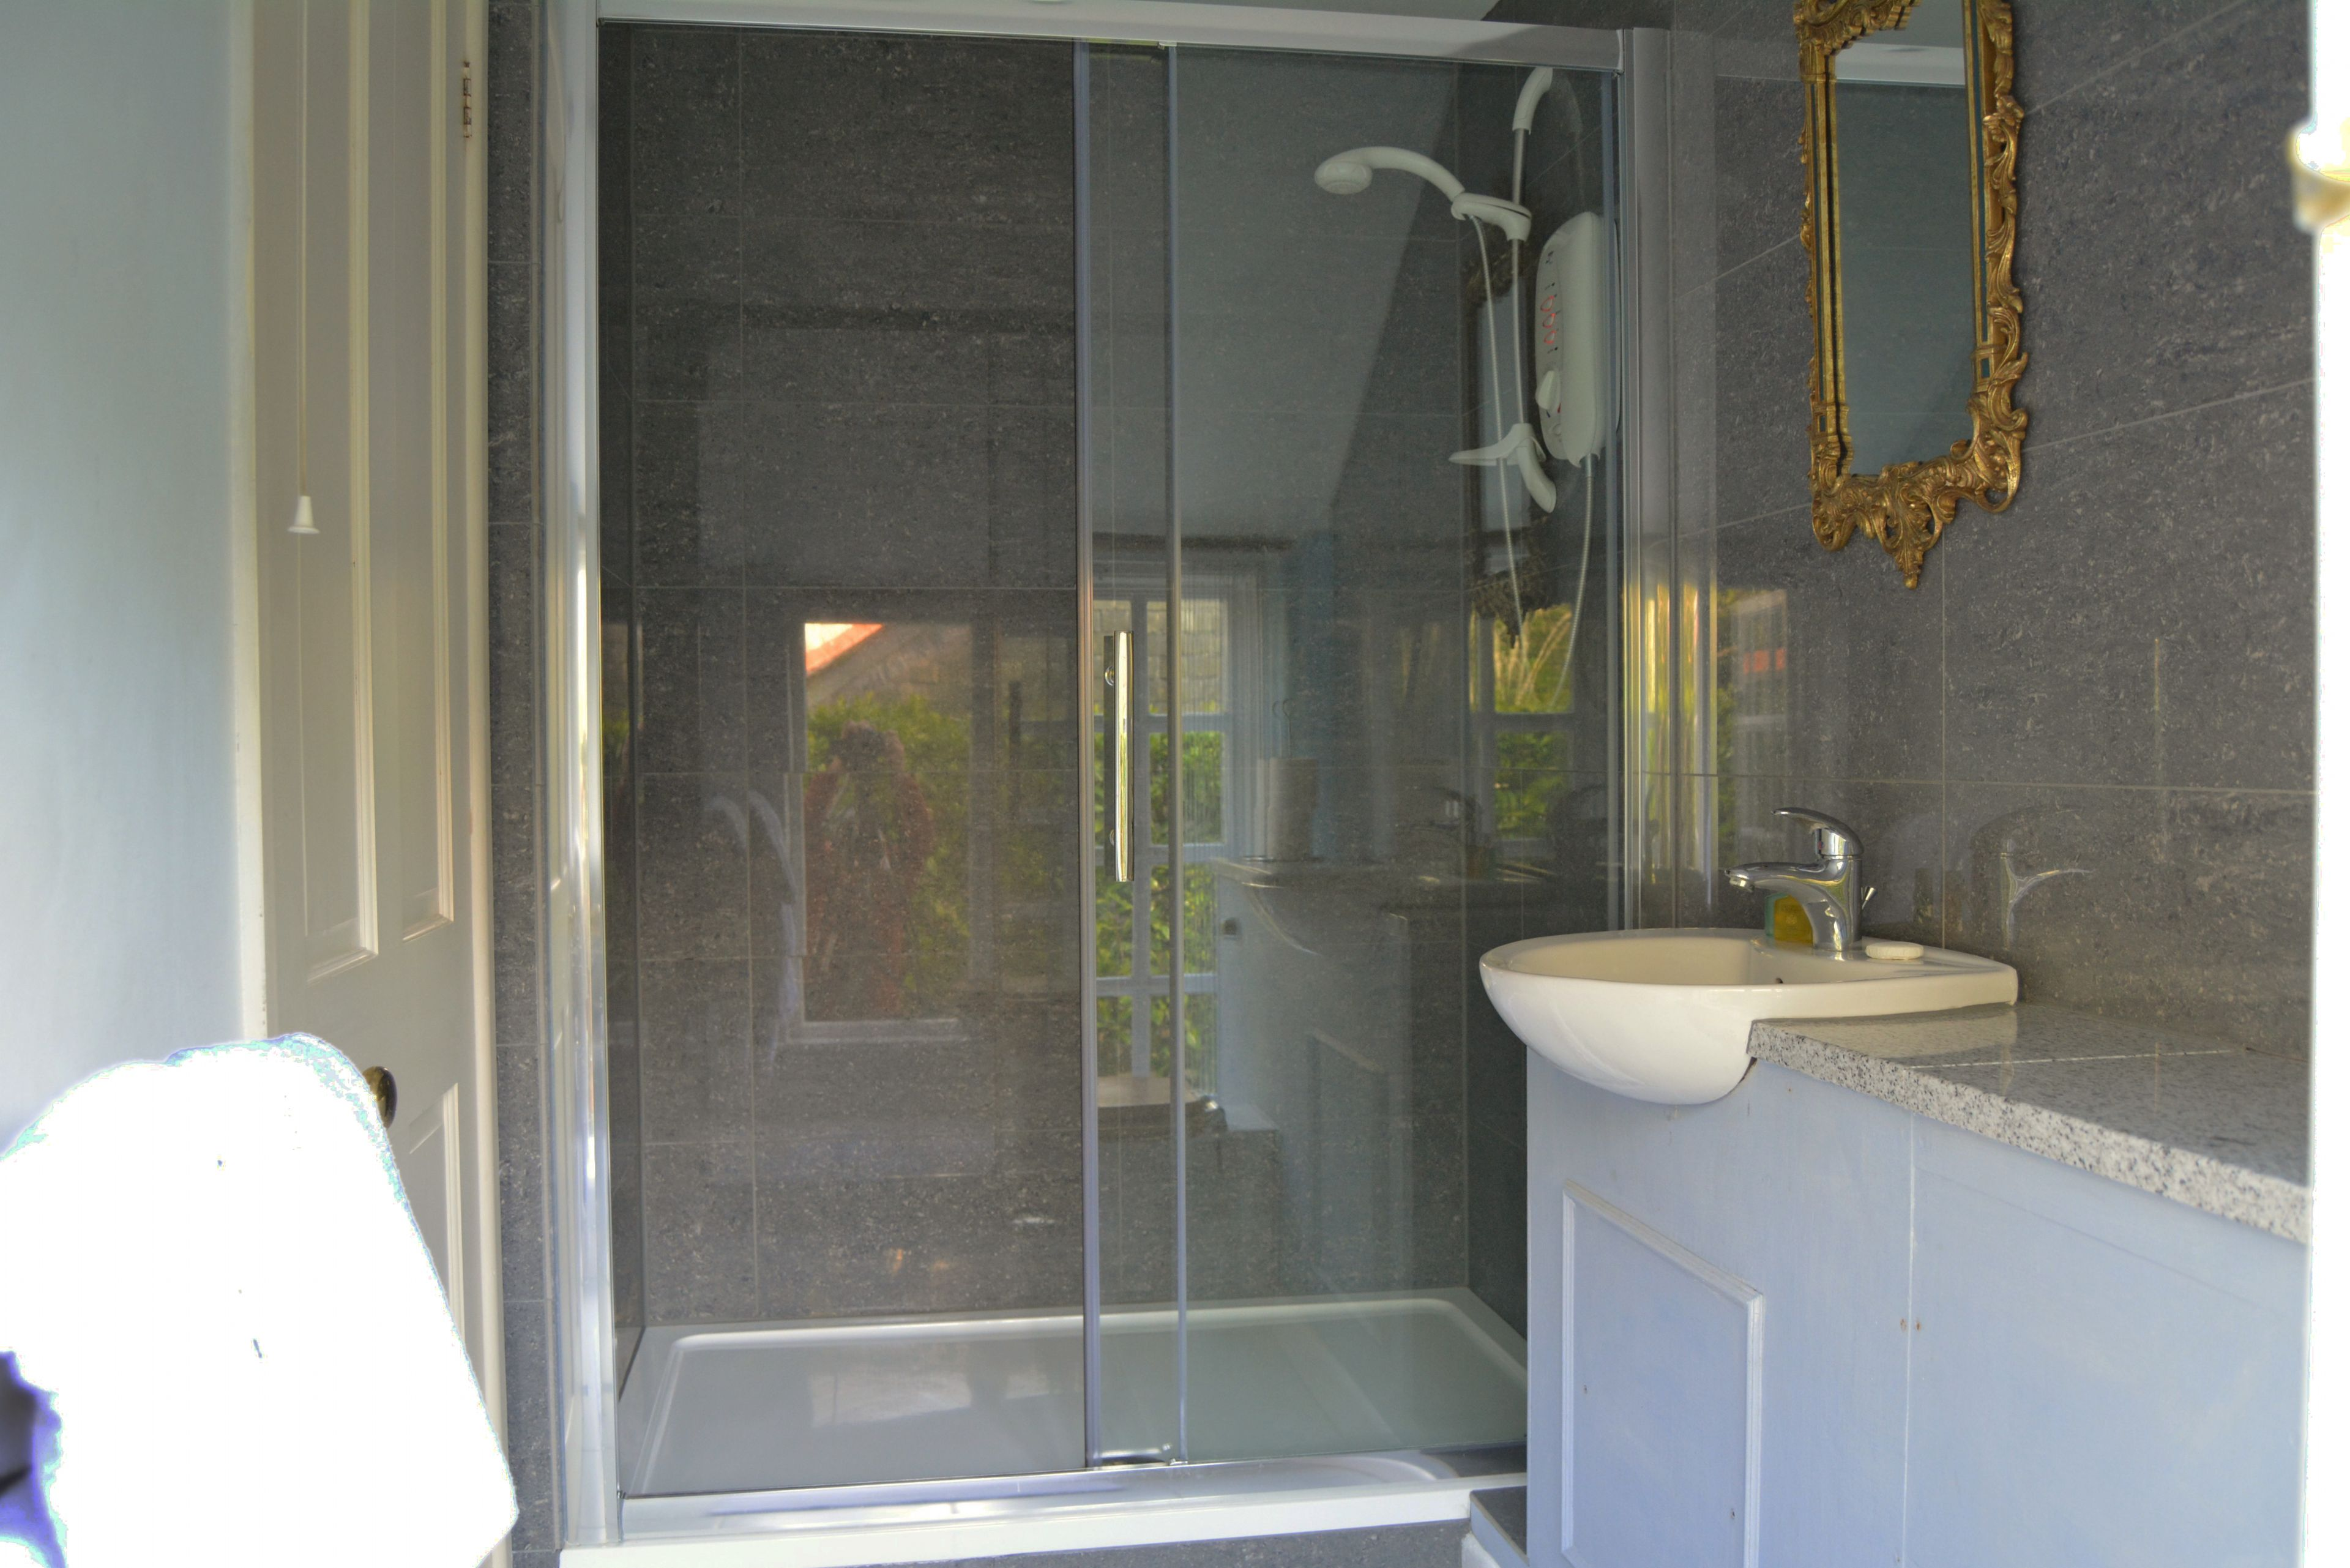 A separate shower room adjoins the bedroom